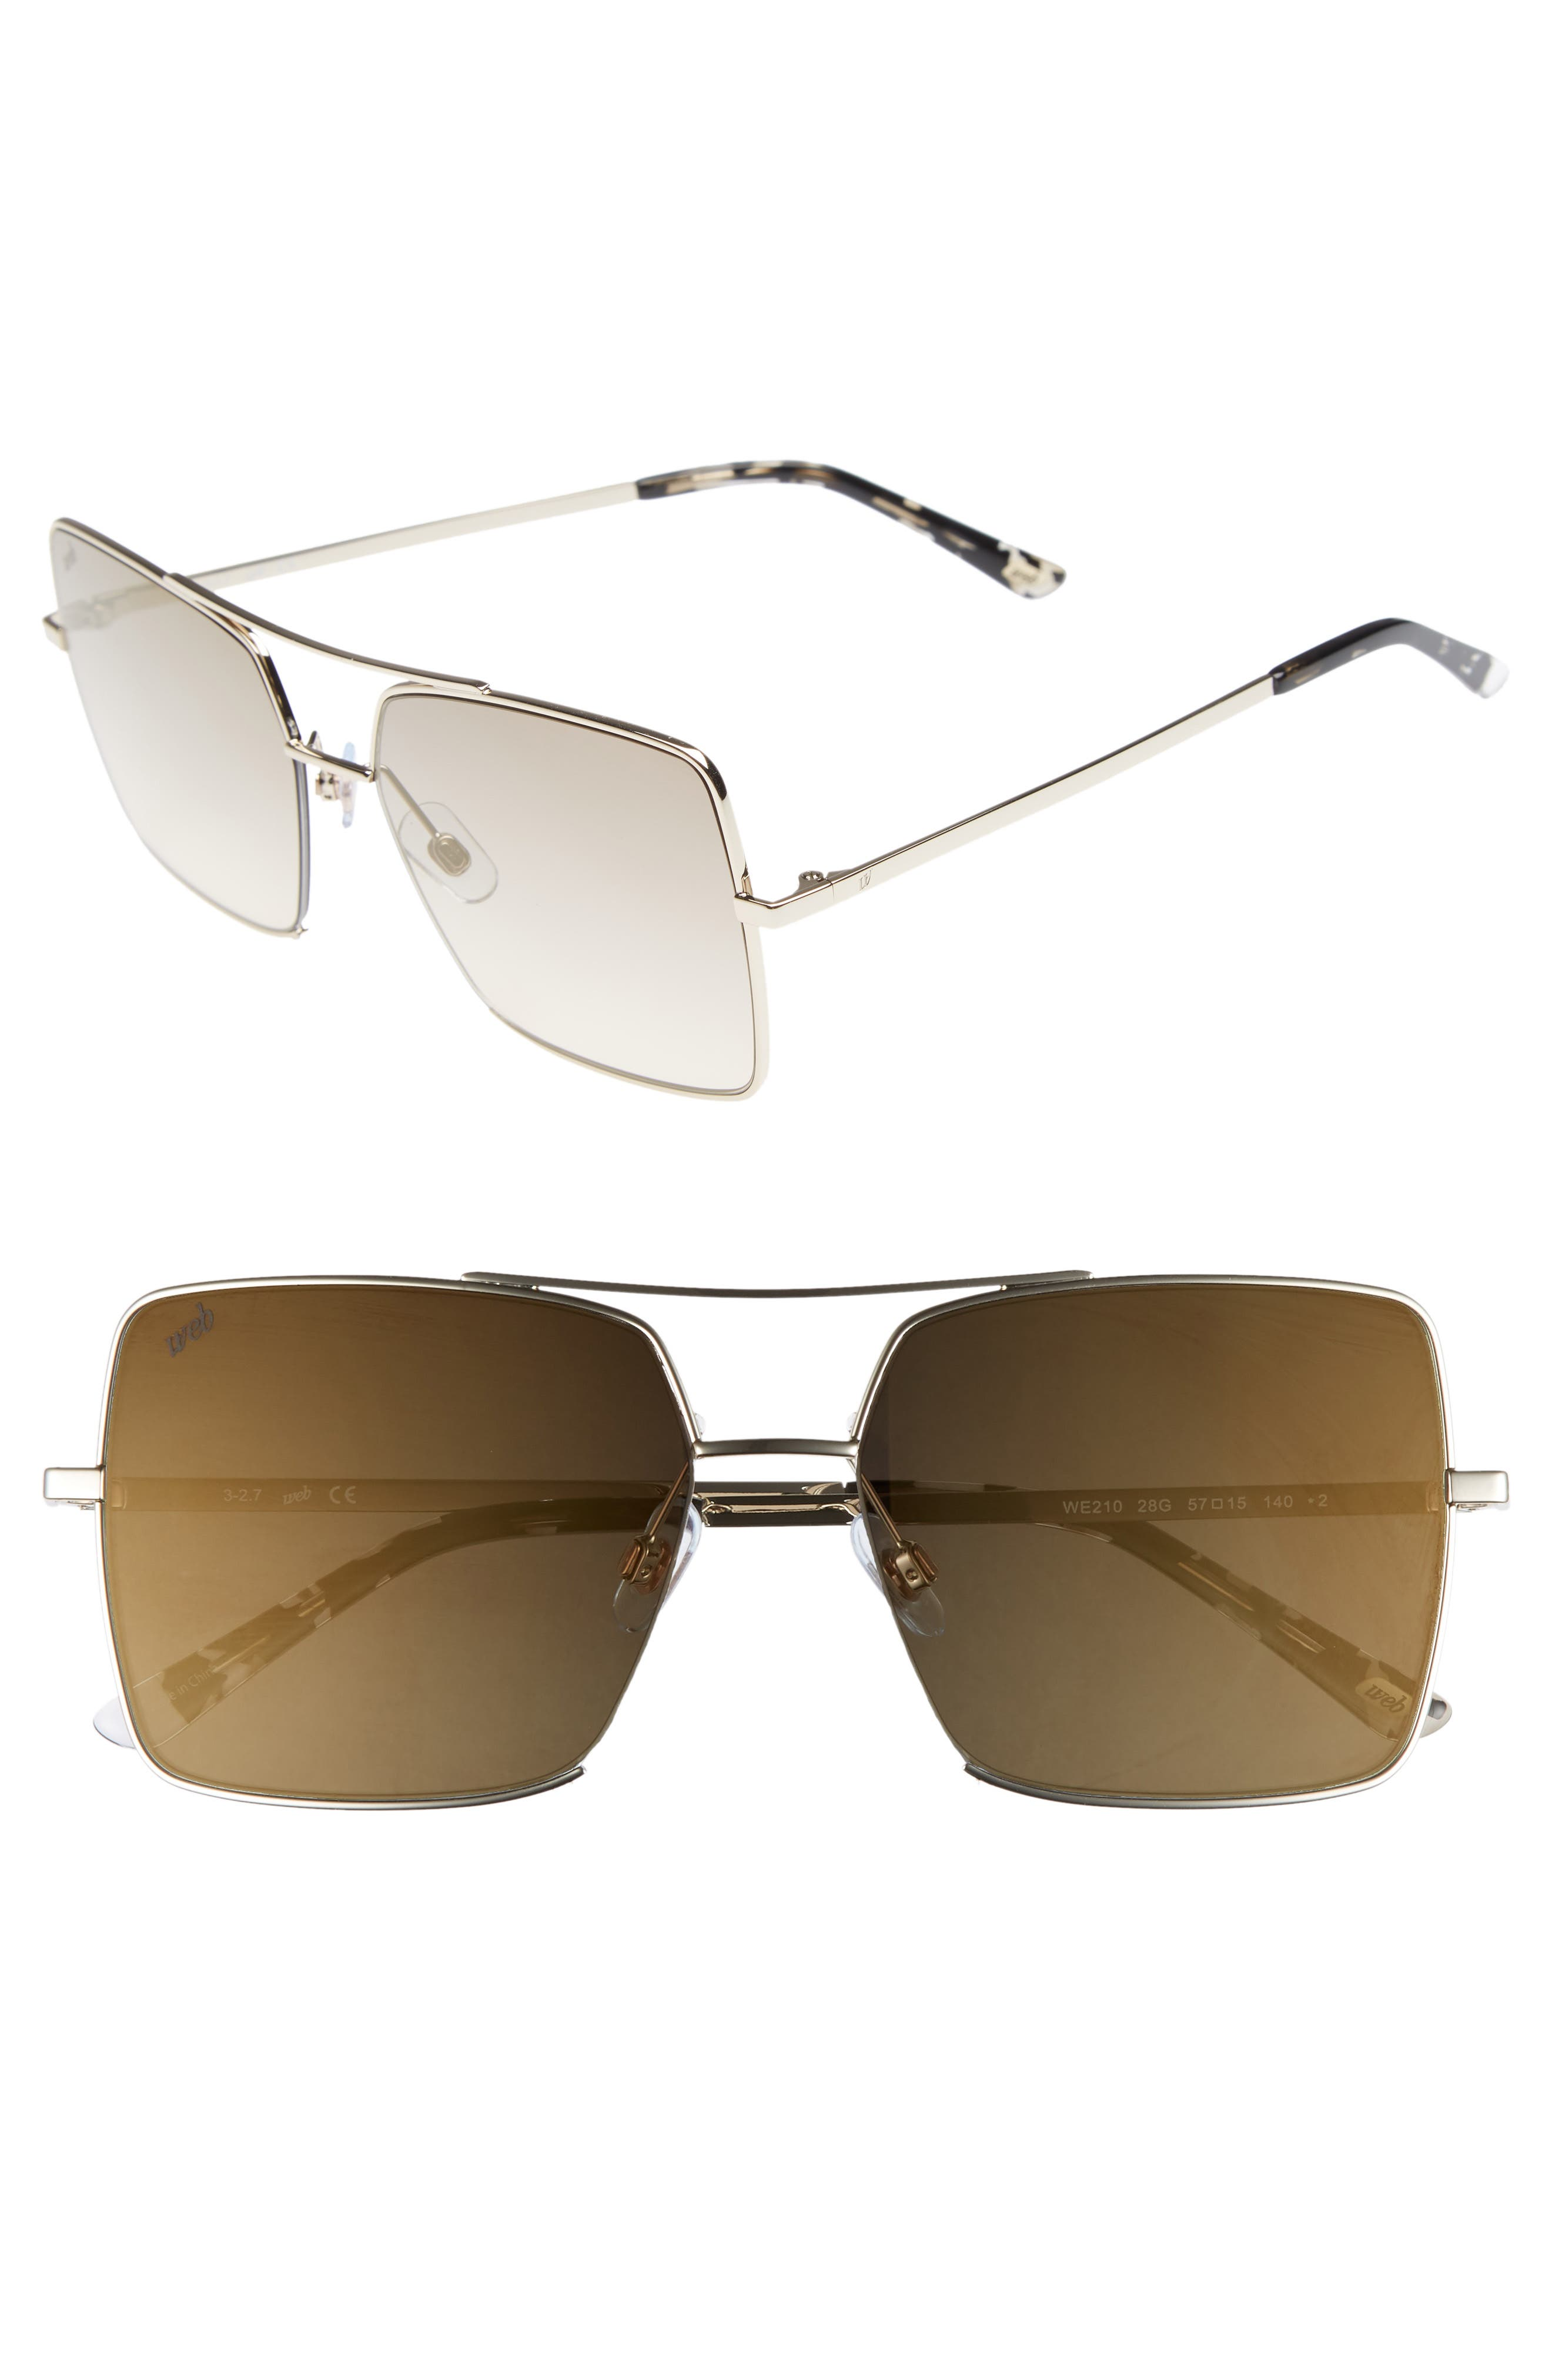 57mm Square Metal Aviator Sunglasses,                         Main,                         color, GOLD/ BROWN